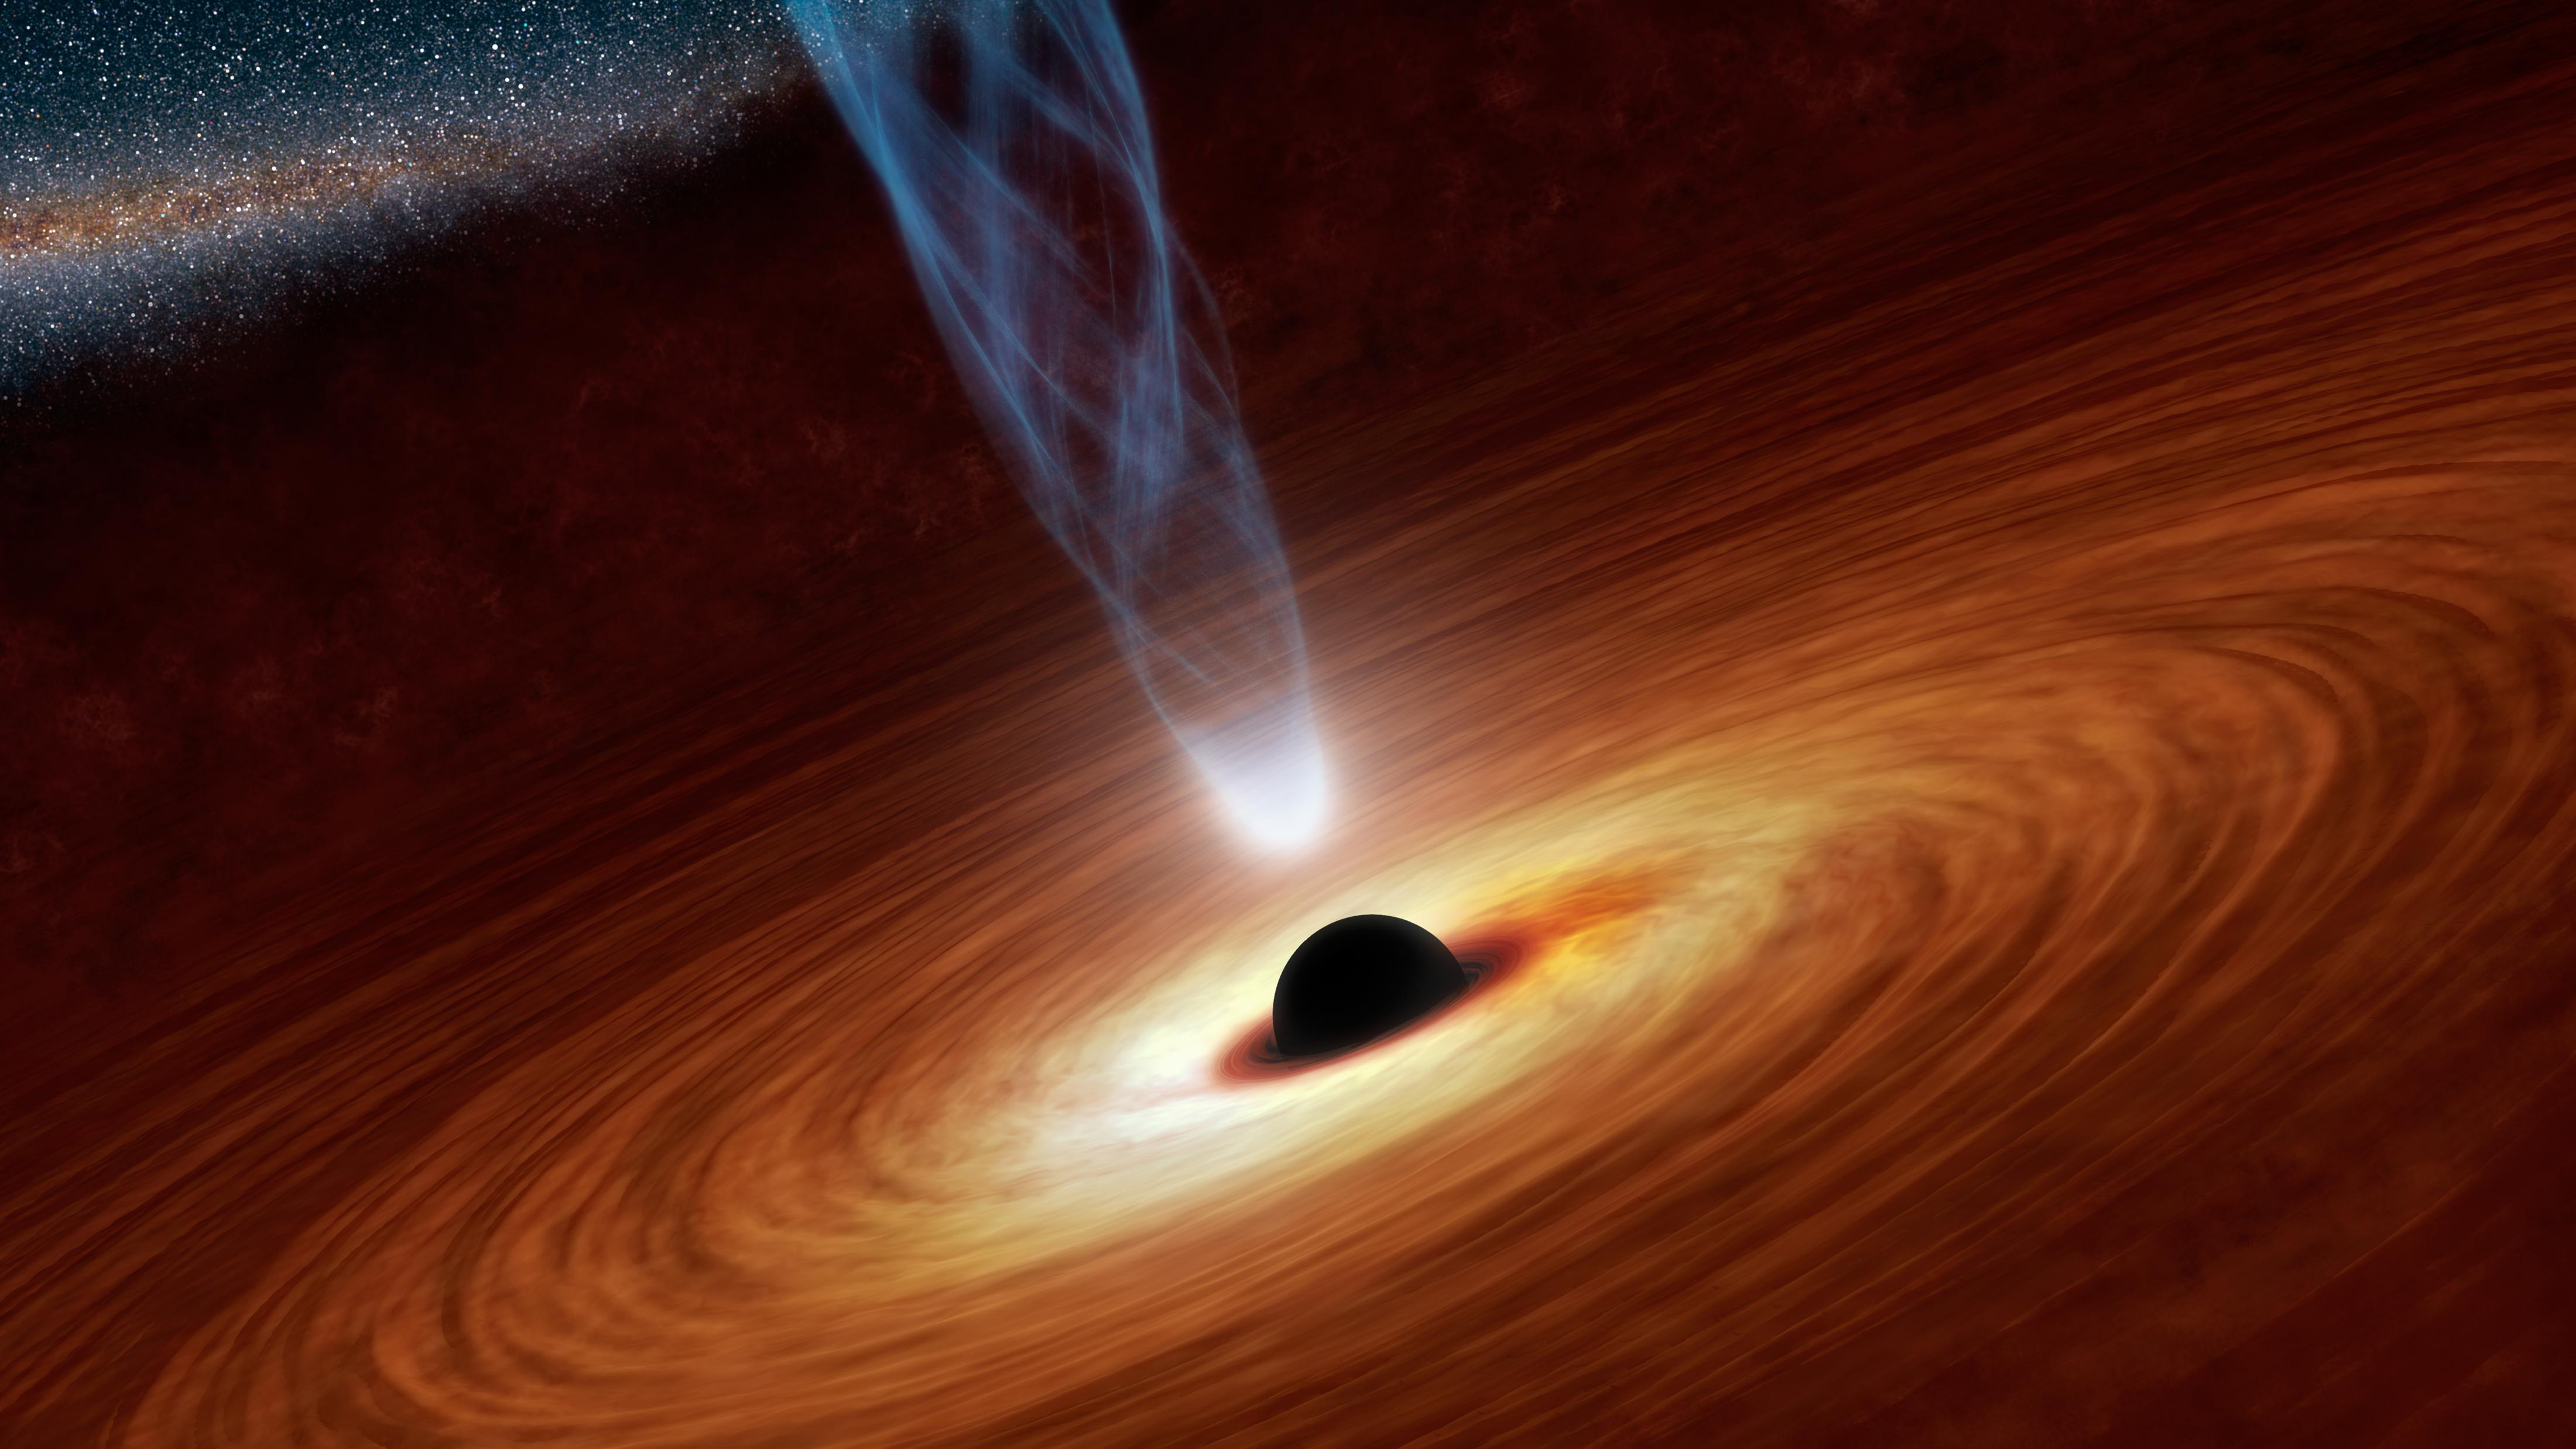 black hole spin courtesy of nasa-jpl-caltech